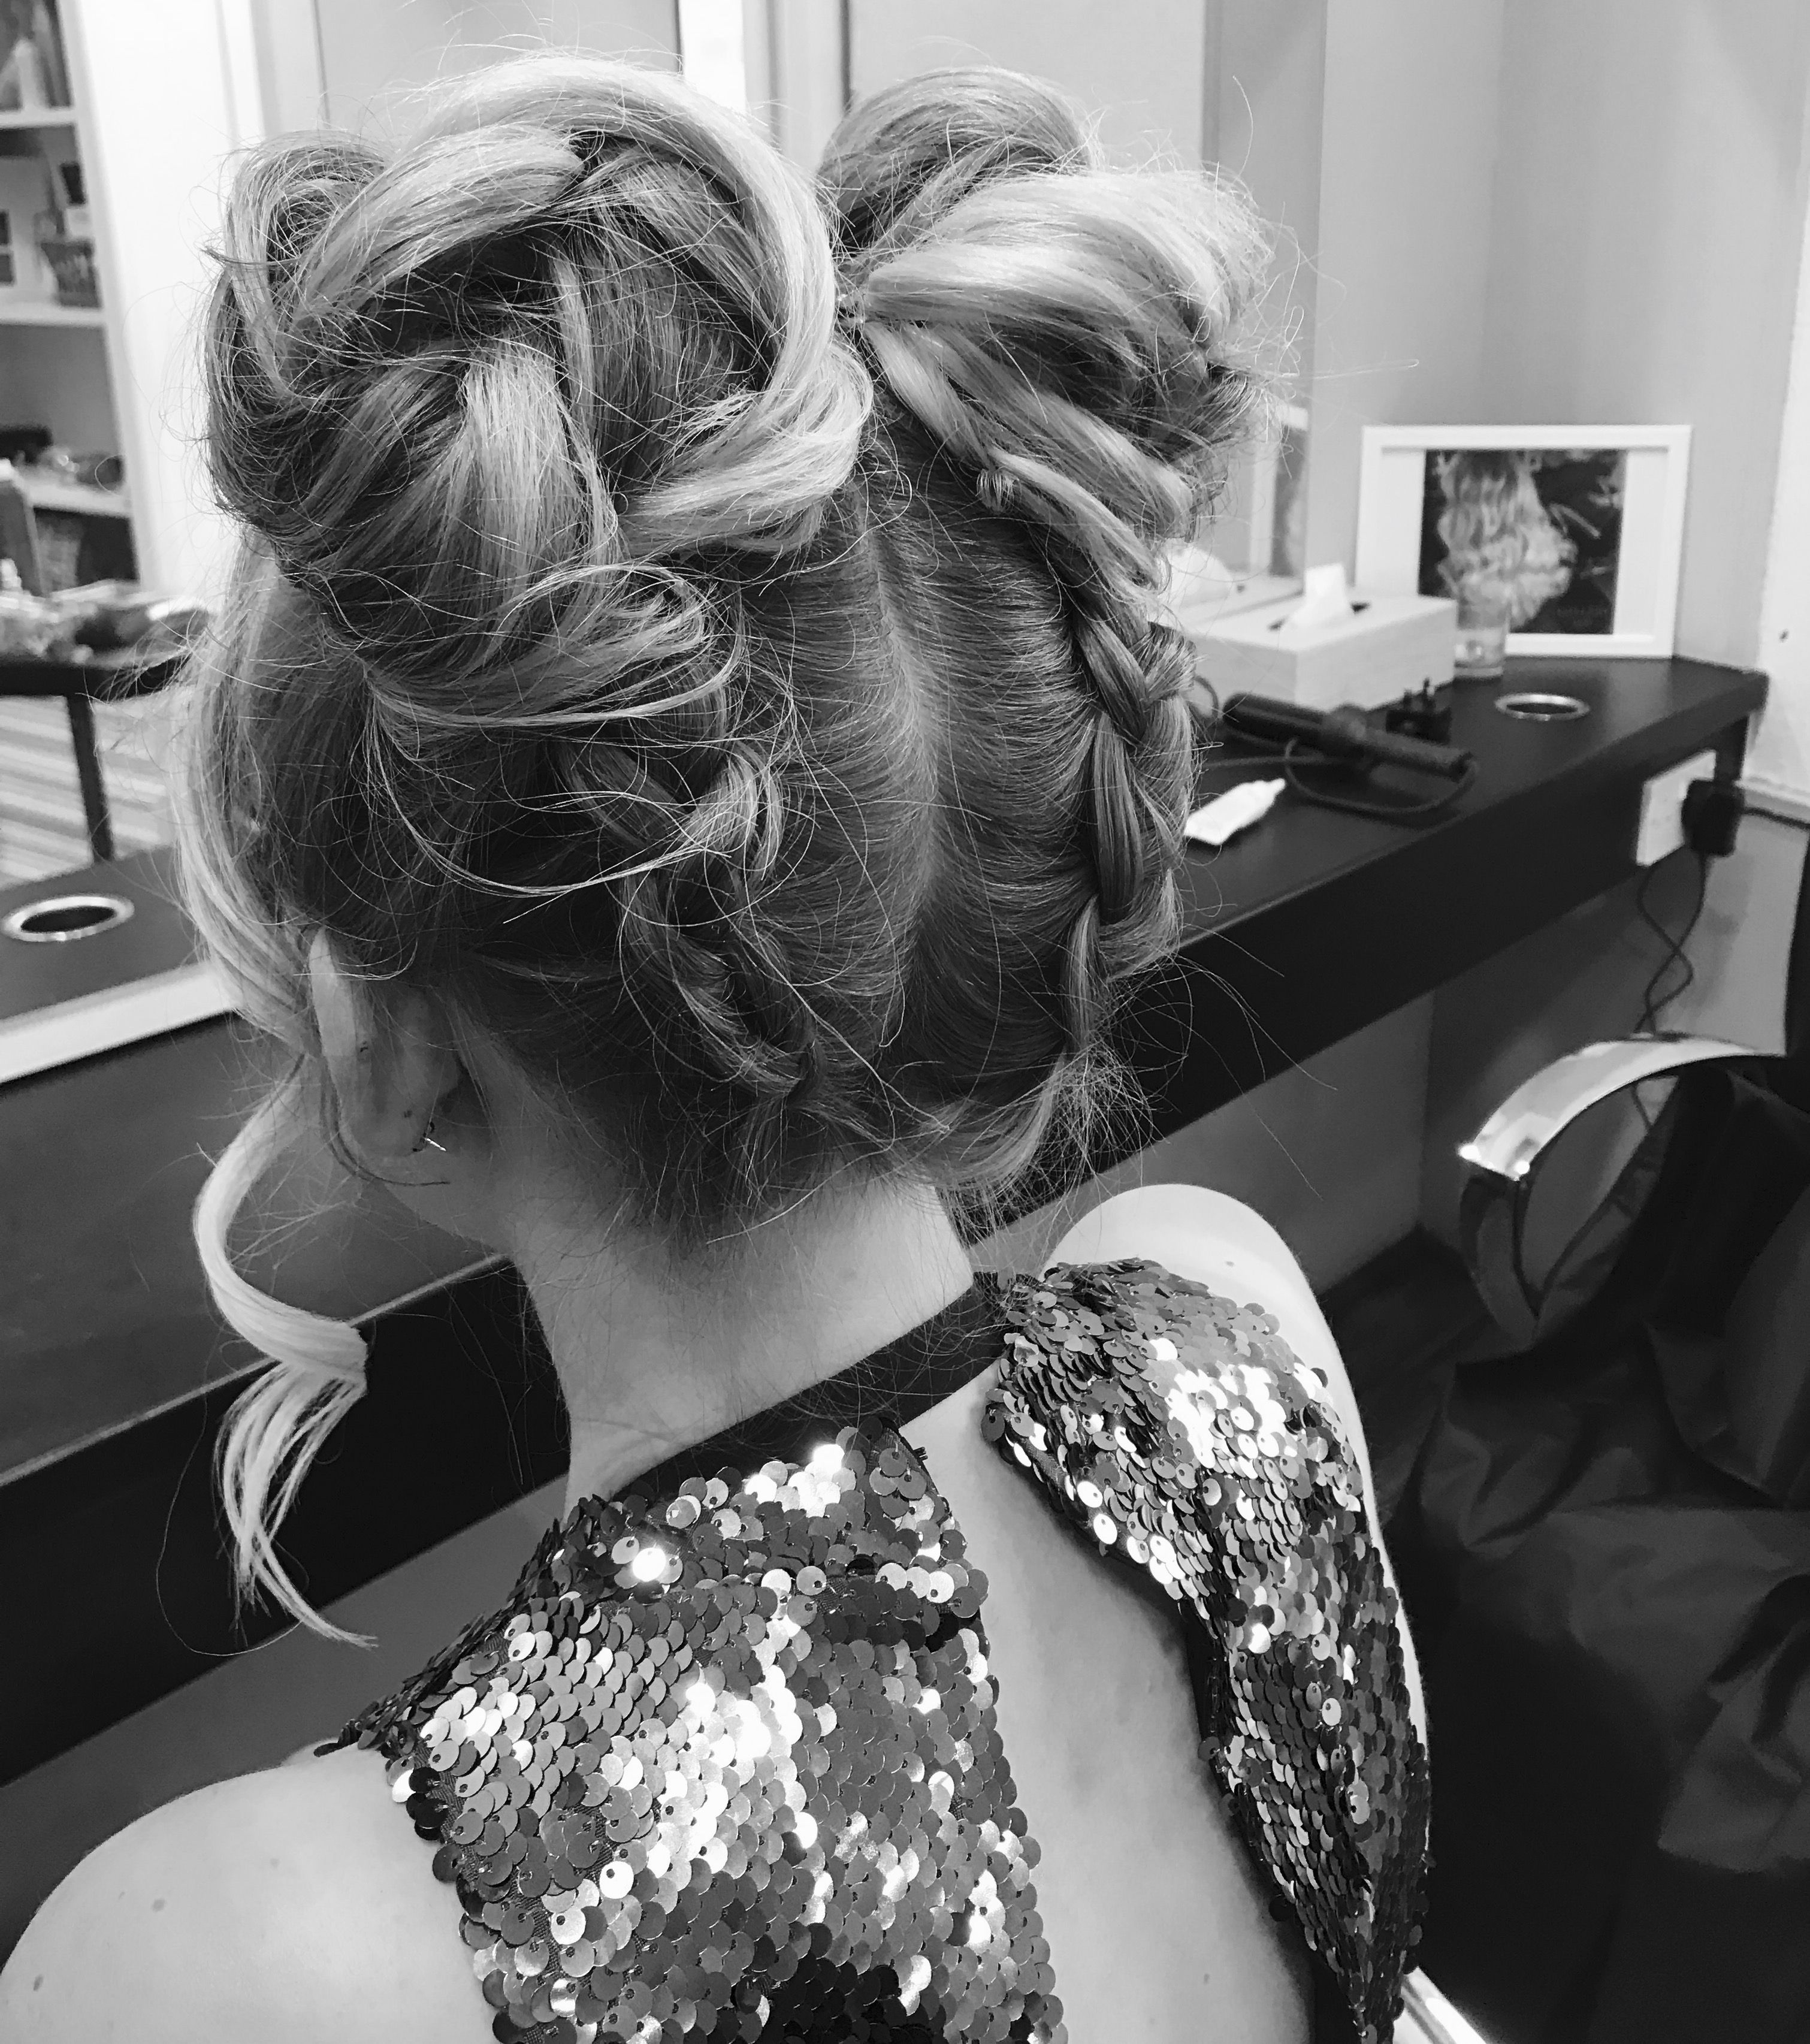 Prom Space Buns Spacebuns Braids Prom Hair Styles Ball Hairstyles Wedding Hairstyles Updo Messy